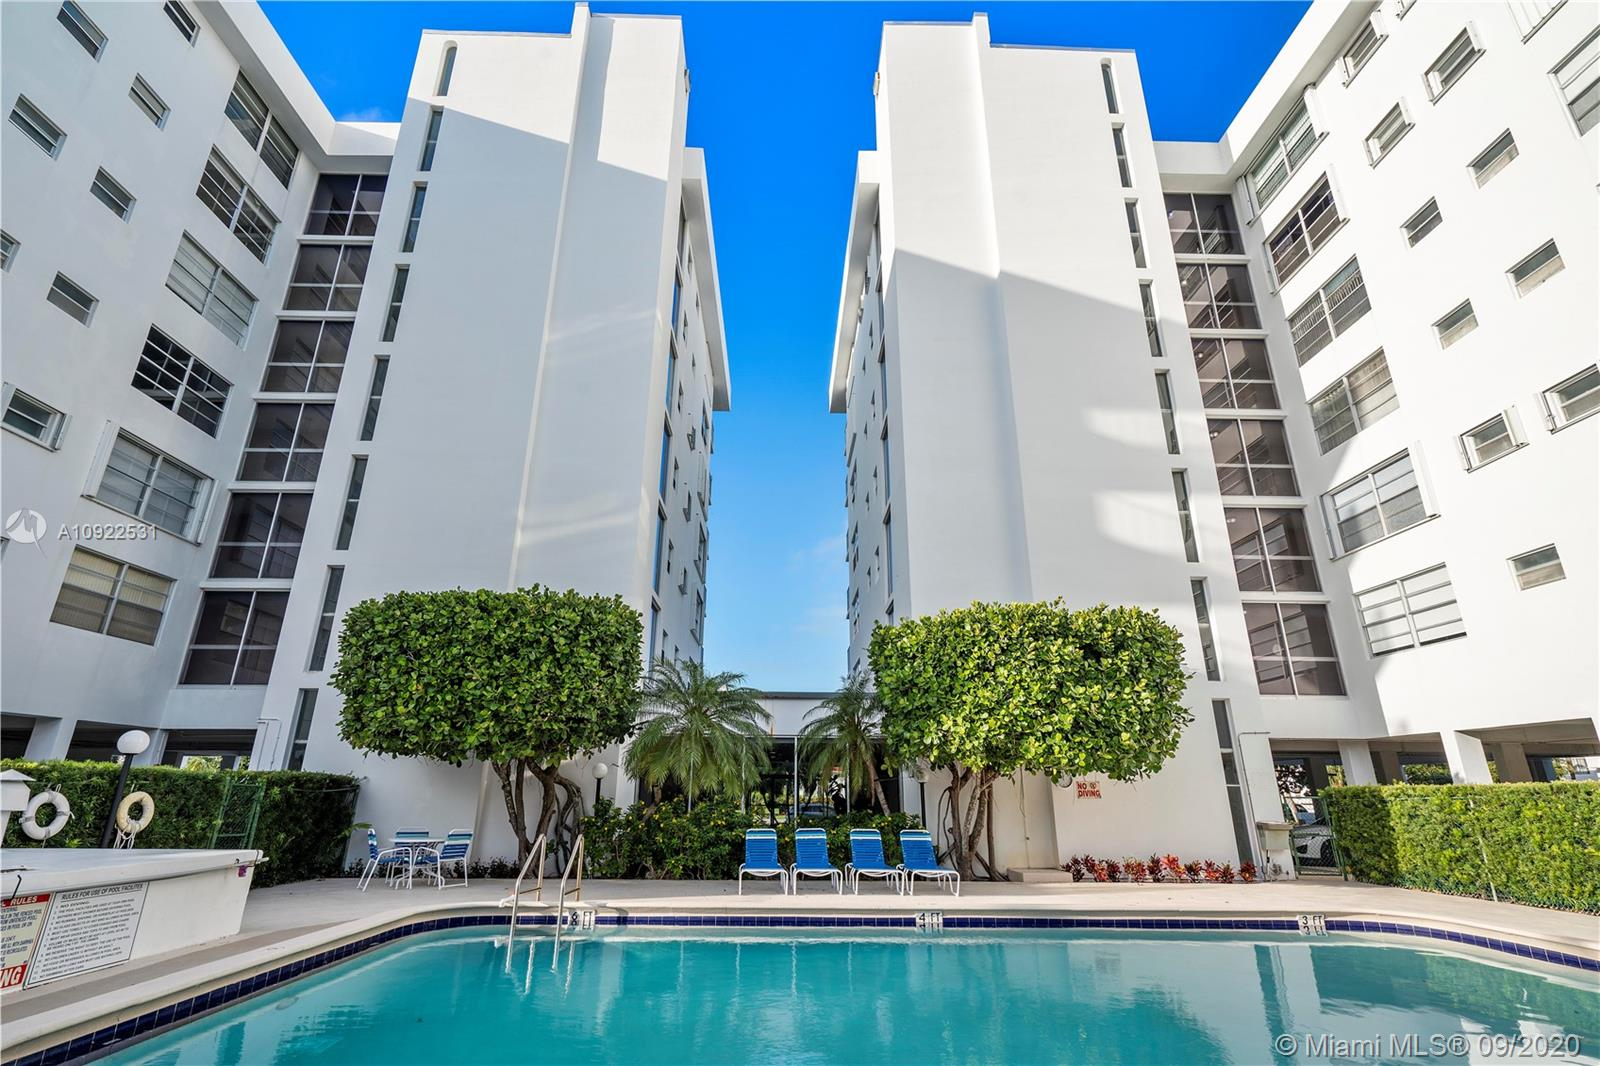 Spacious & bright corner unit in the heart of Bay Harbor Islands. Open kitchen w/ updated stainless steel appliances, granite counter tops and large pantry. Tile floors throughout. Unit comes w/ 2 parking spaces. Storage unit located on the same floor as the apt. Oversized master bedroom w/ large walk in closet. Building is secure and well maintained w/ a small gym and recreation room. Large pool area. Cable TV & internet are included in HOA. Half block away from A+ Rated Bay Harbor K-8th Grade. Lots of guest parking available. Cannot rent for first 2 years of ownership. No pets.